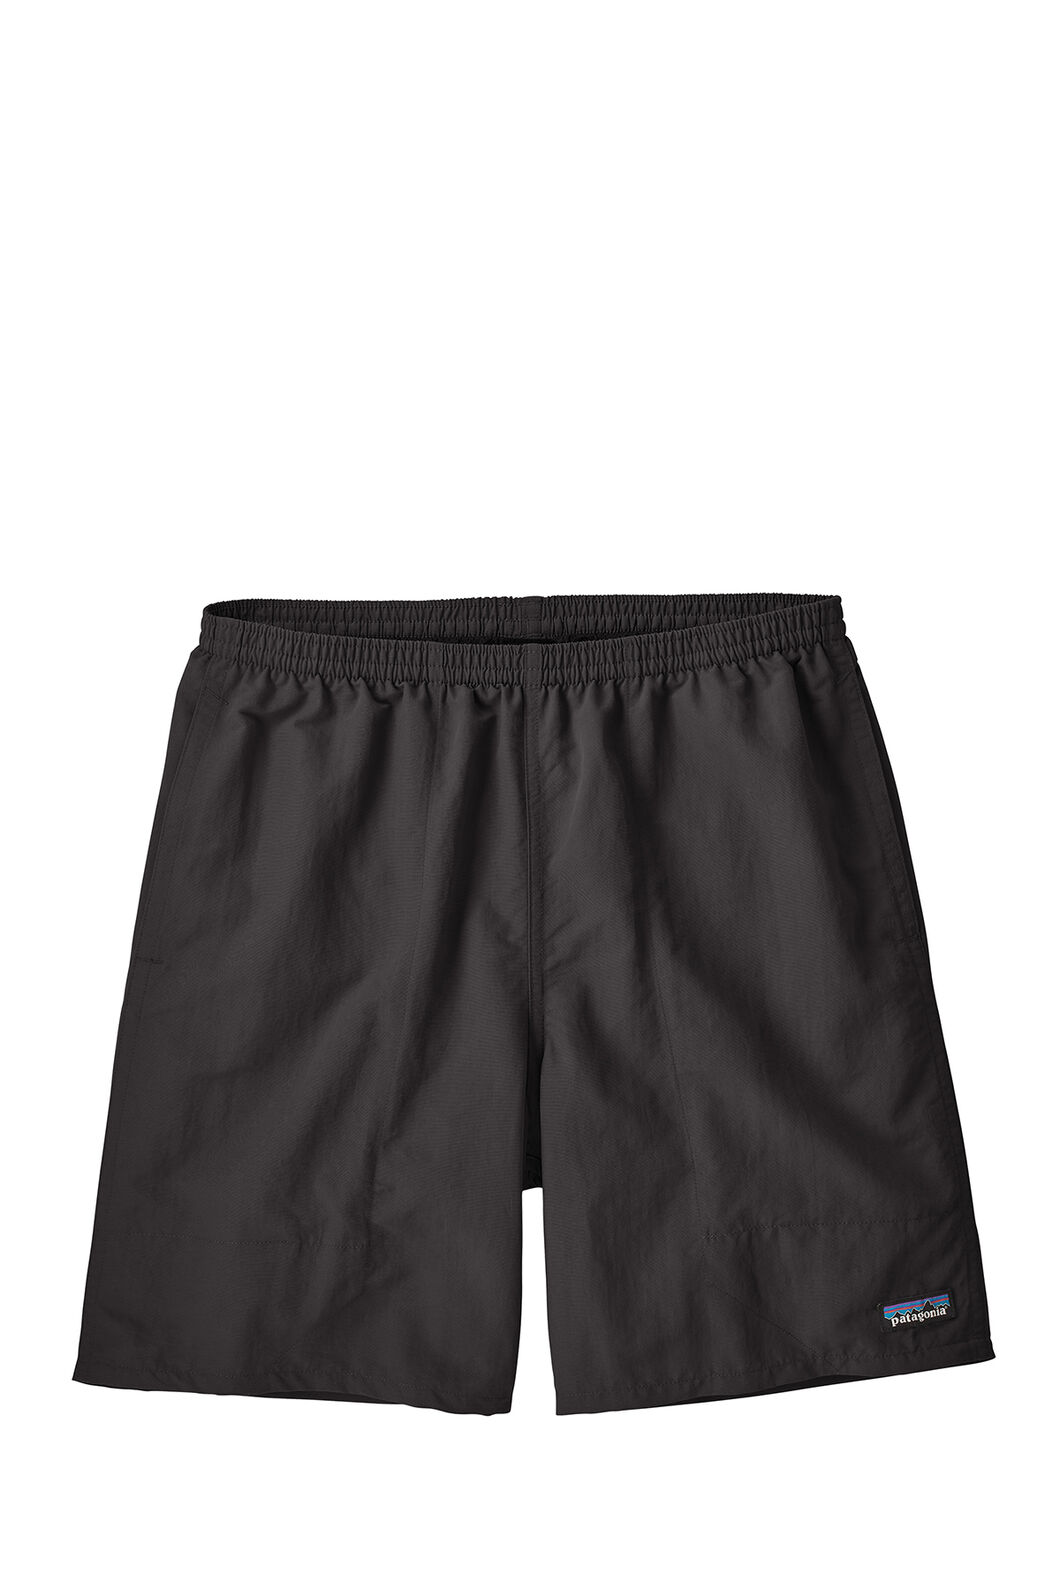 "Patagonia Baggies Longs Short 7"" — Men's, Black, hi-res"